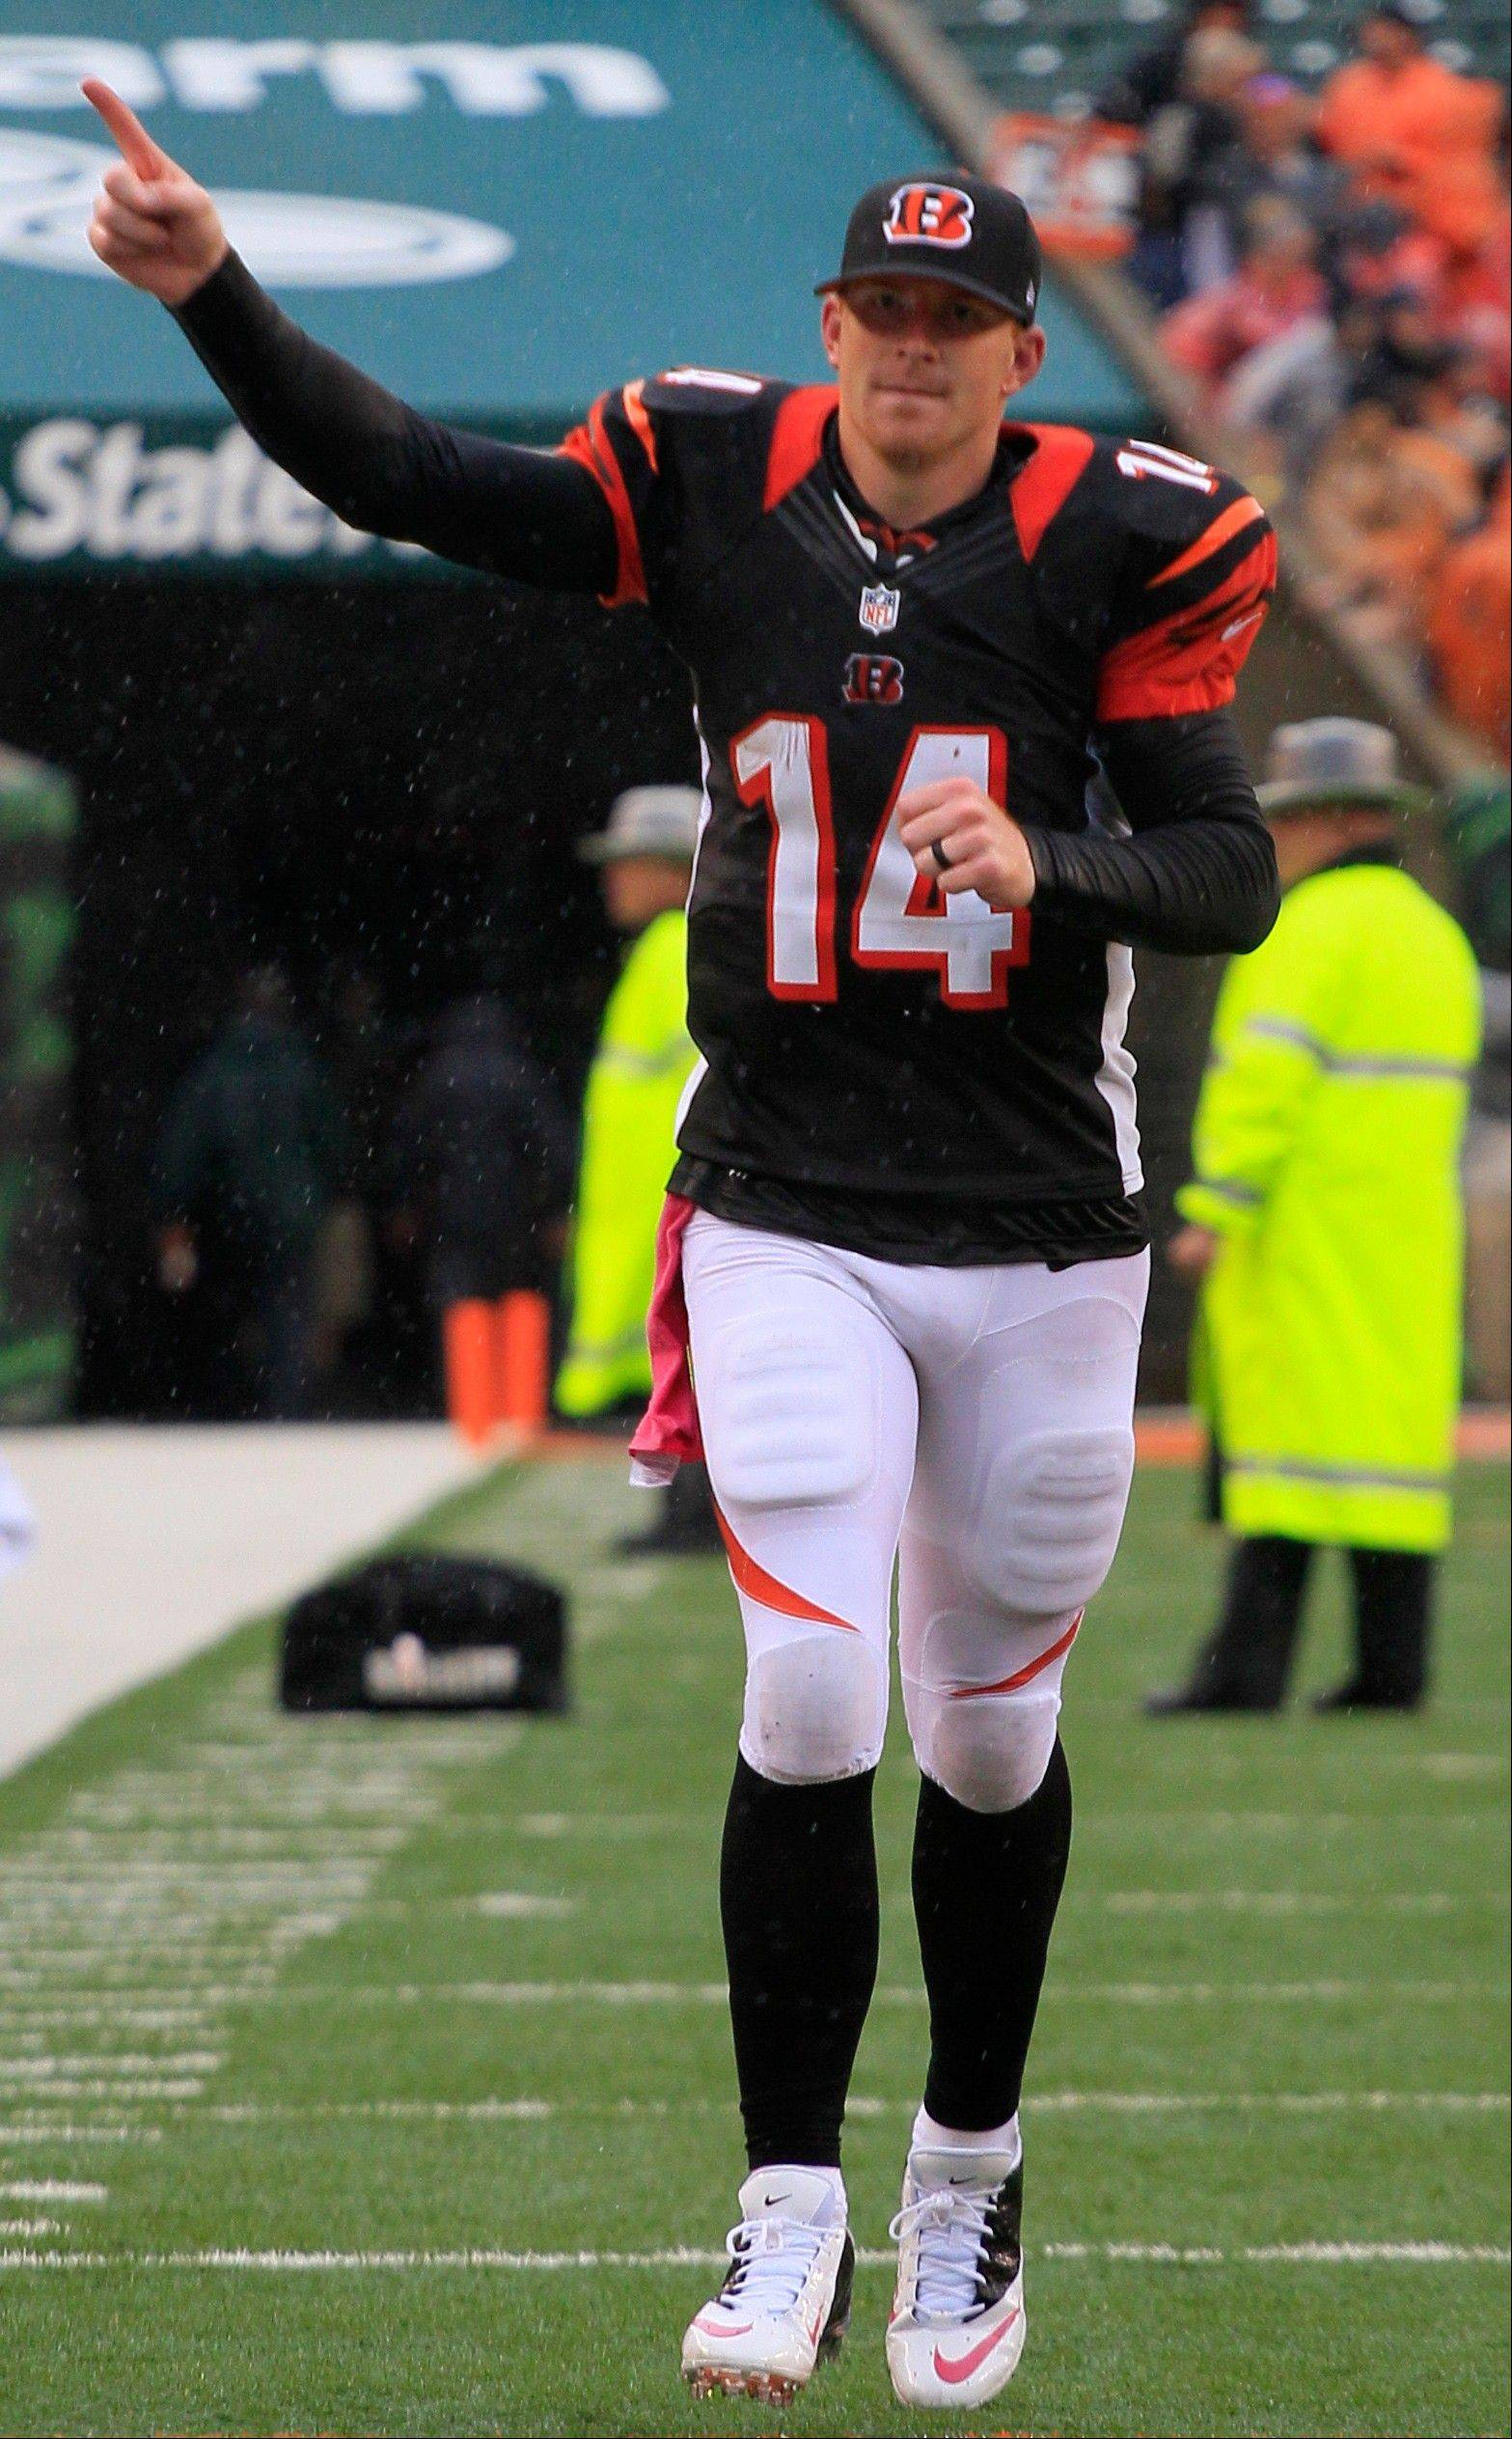 Cincinnati Bengals quarterback Andy Dalton runs off the field after the Bengals defeated the New England Patriots 13-6 in an NFL football game on Sunday, Oct. 6, 2013, in Cincinnati.